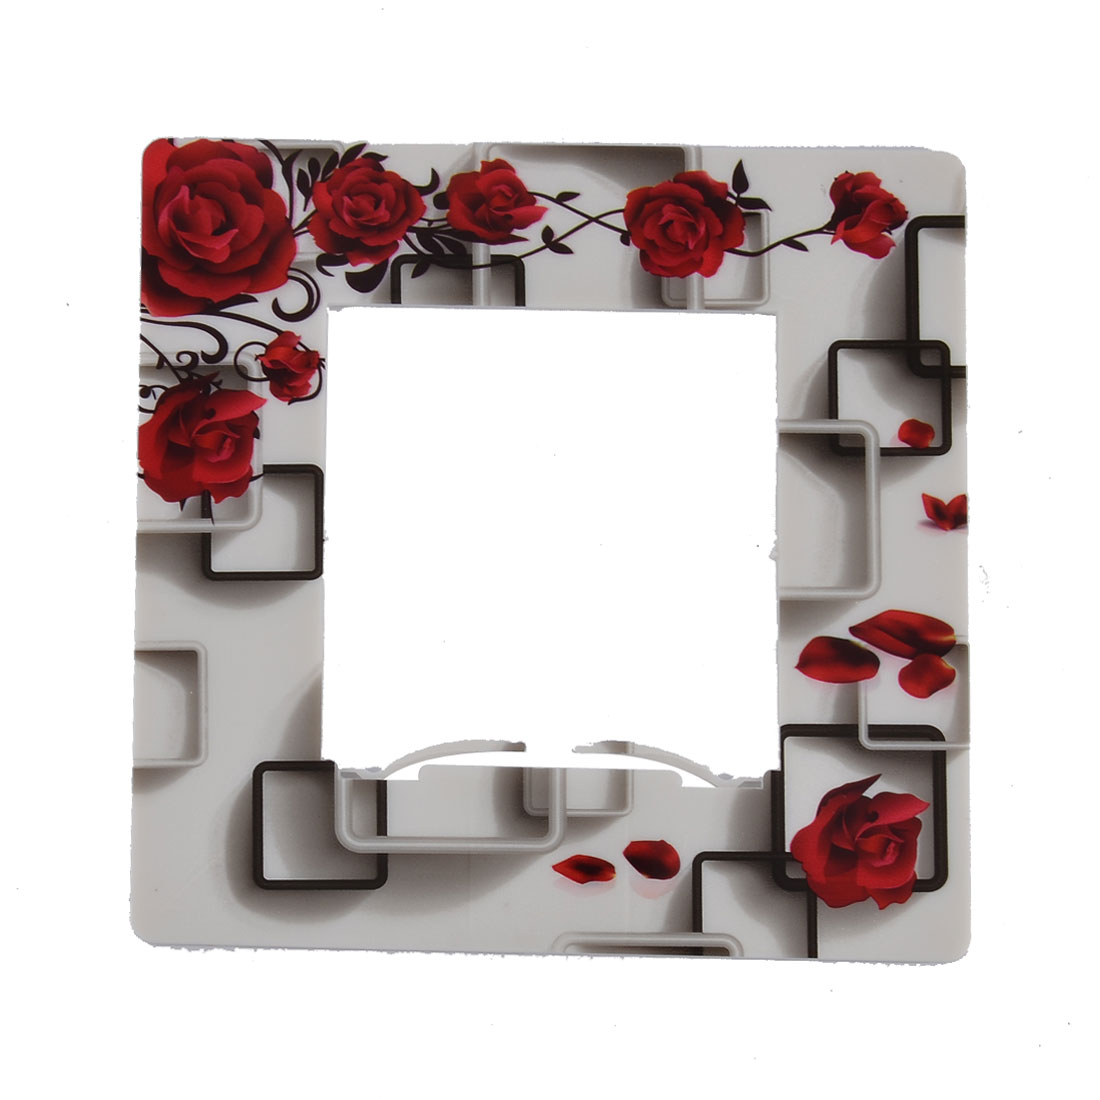 Plastic Rose Pattern Square Shape Light Switch Cover Plate Protector